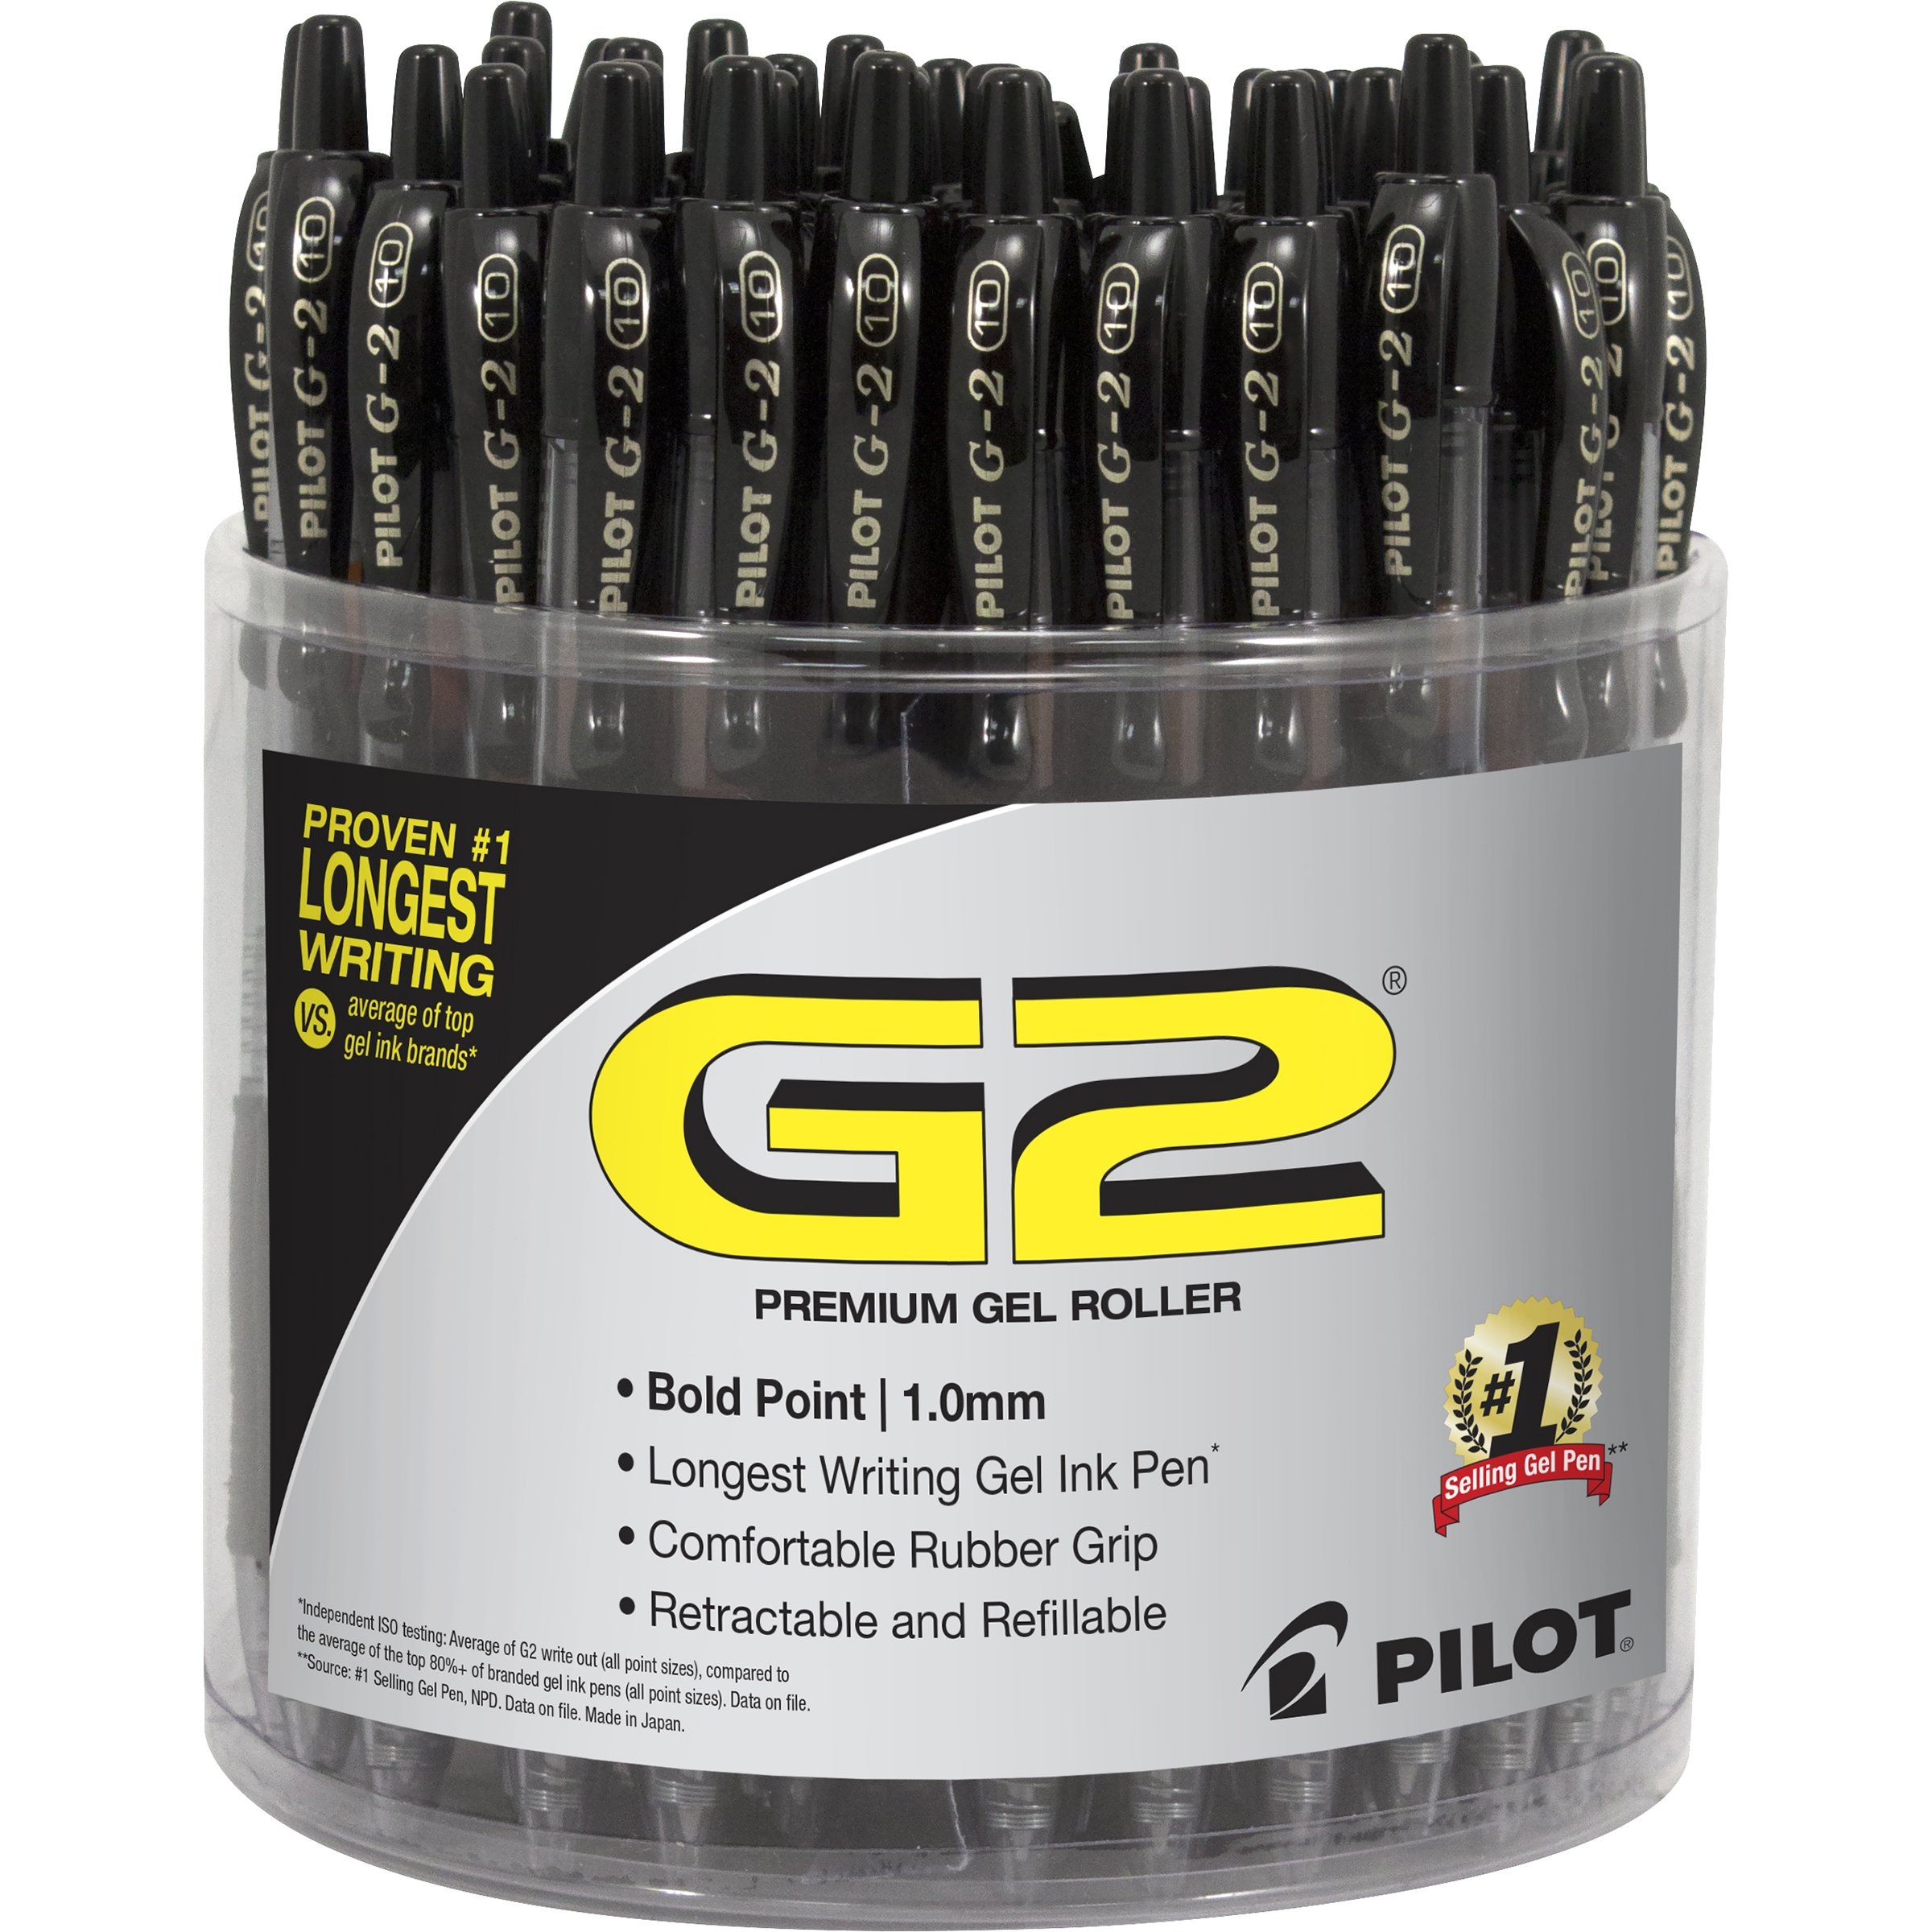 PILOT G2 Premium Refillable & Retractable Rolling Ball Gel Pens, Bold Point, Black Ink, Tub of 48 (5673A) by Pilot